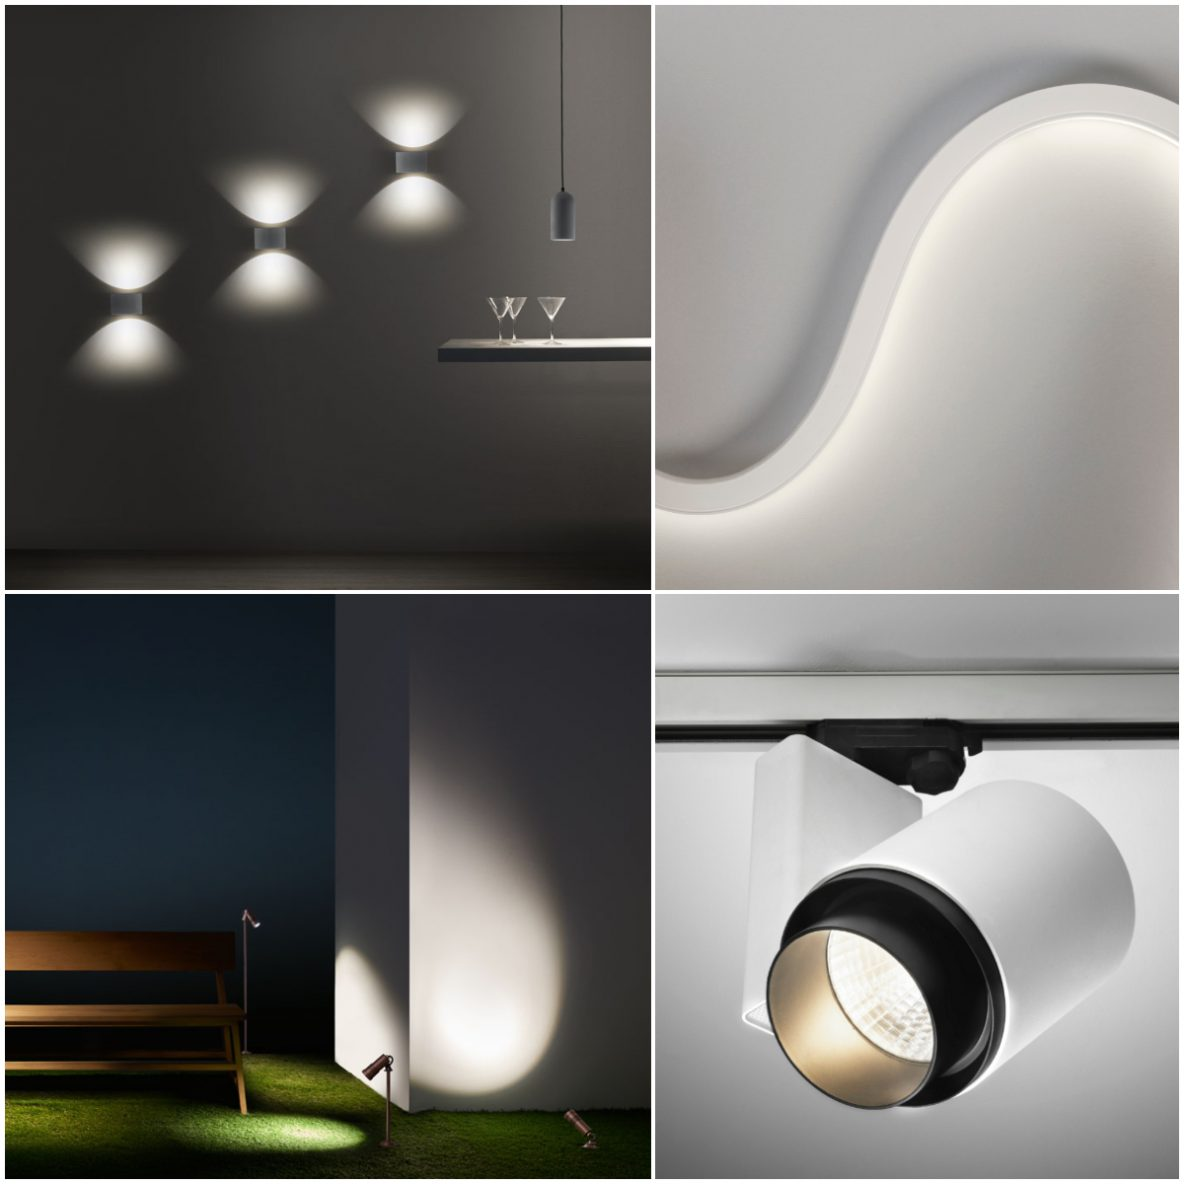 Leds C4 distribuita da Lighting Design srl